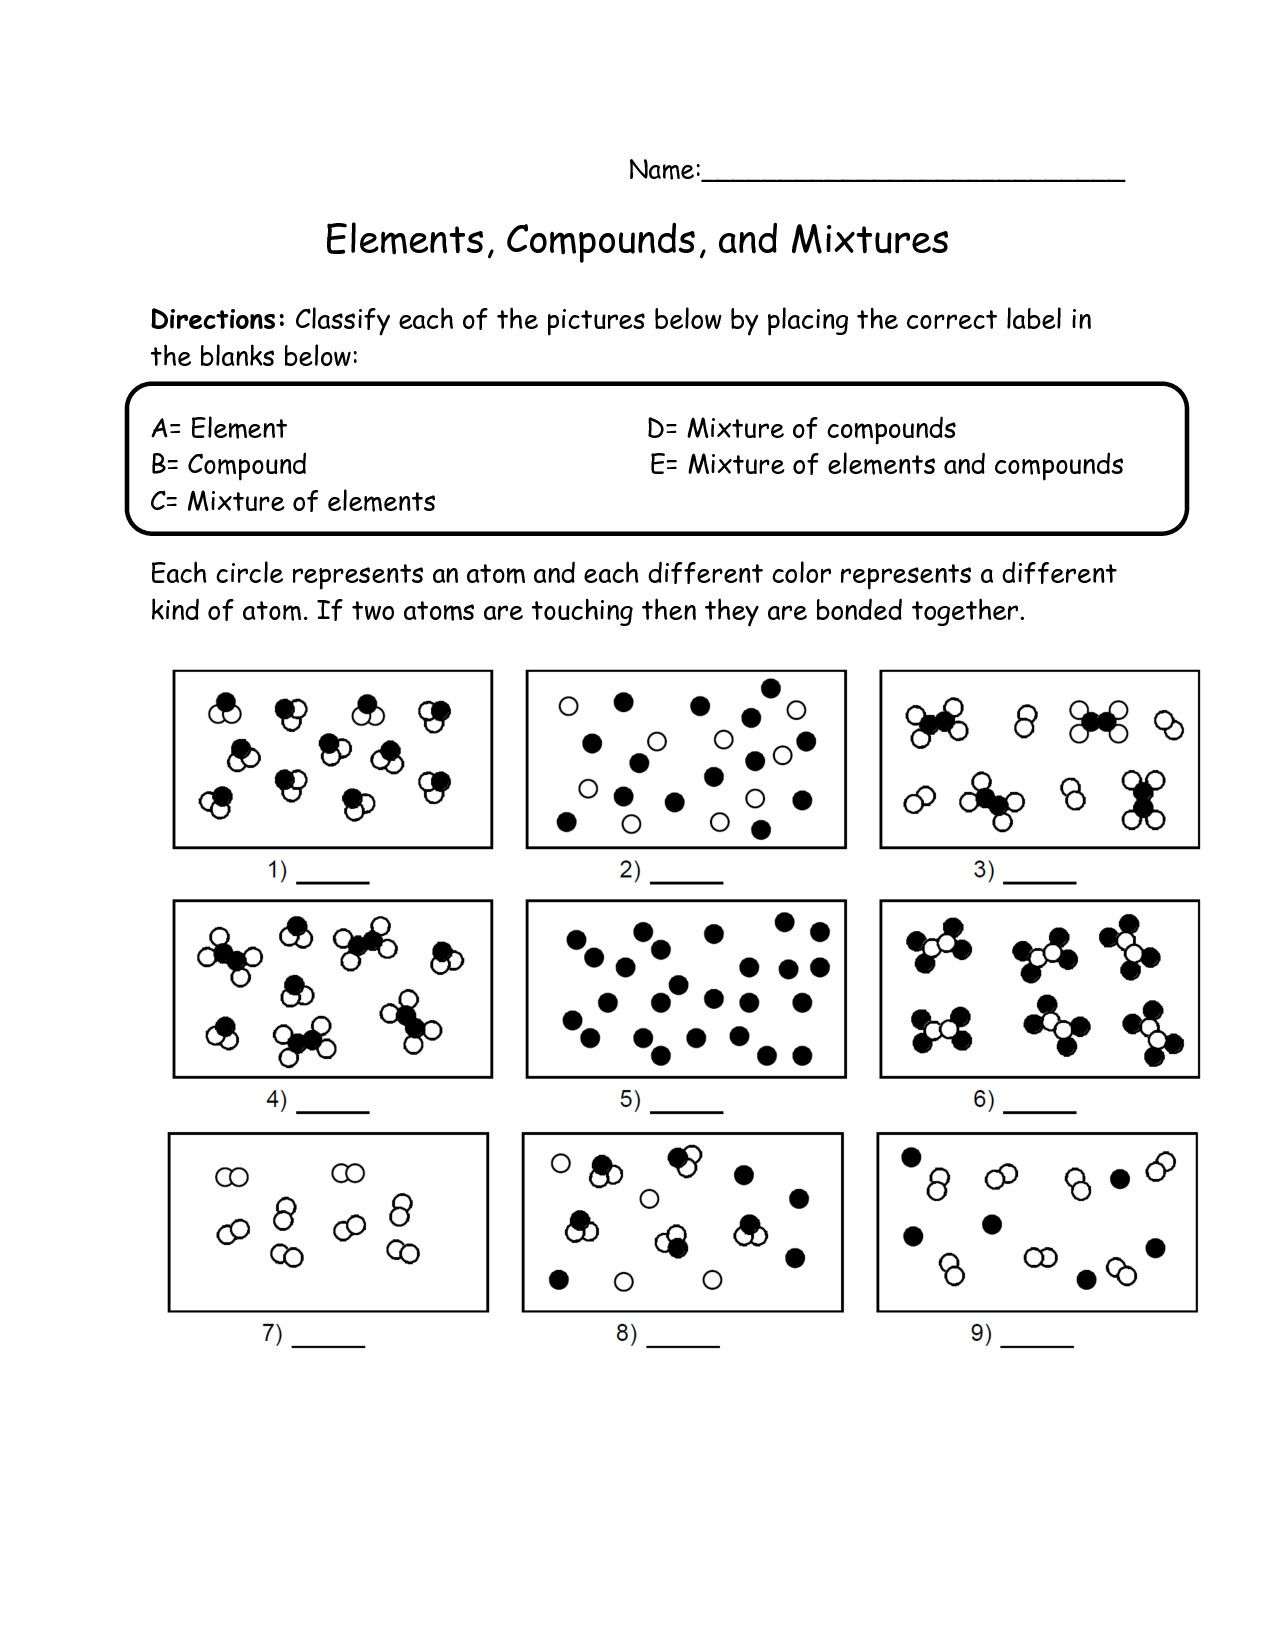 Elements Compounds And Mixtures Worksheet 17 Best Of Elements Pounds And Mixtures Elements Compounds And Mixtures Compounds And Mixtures Biology Worksheet